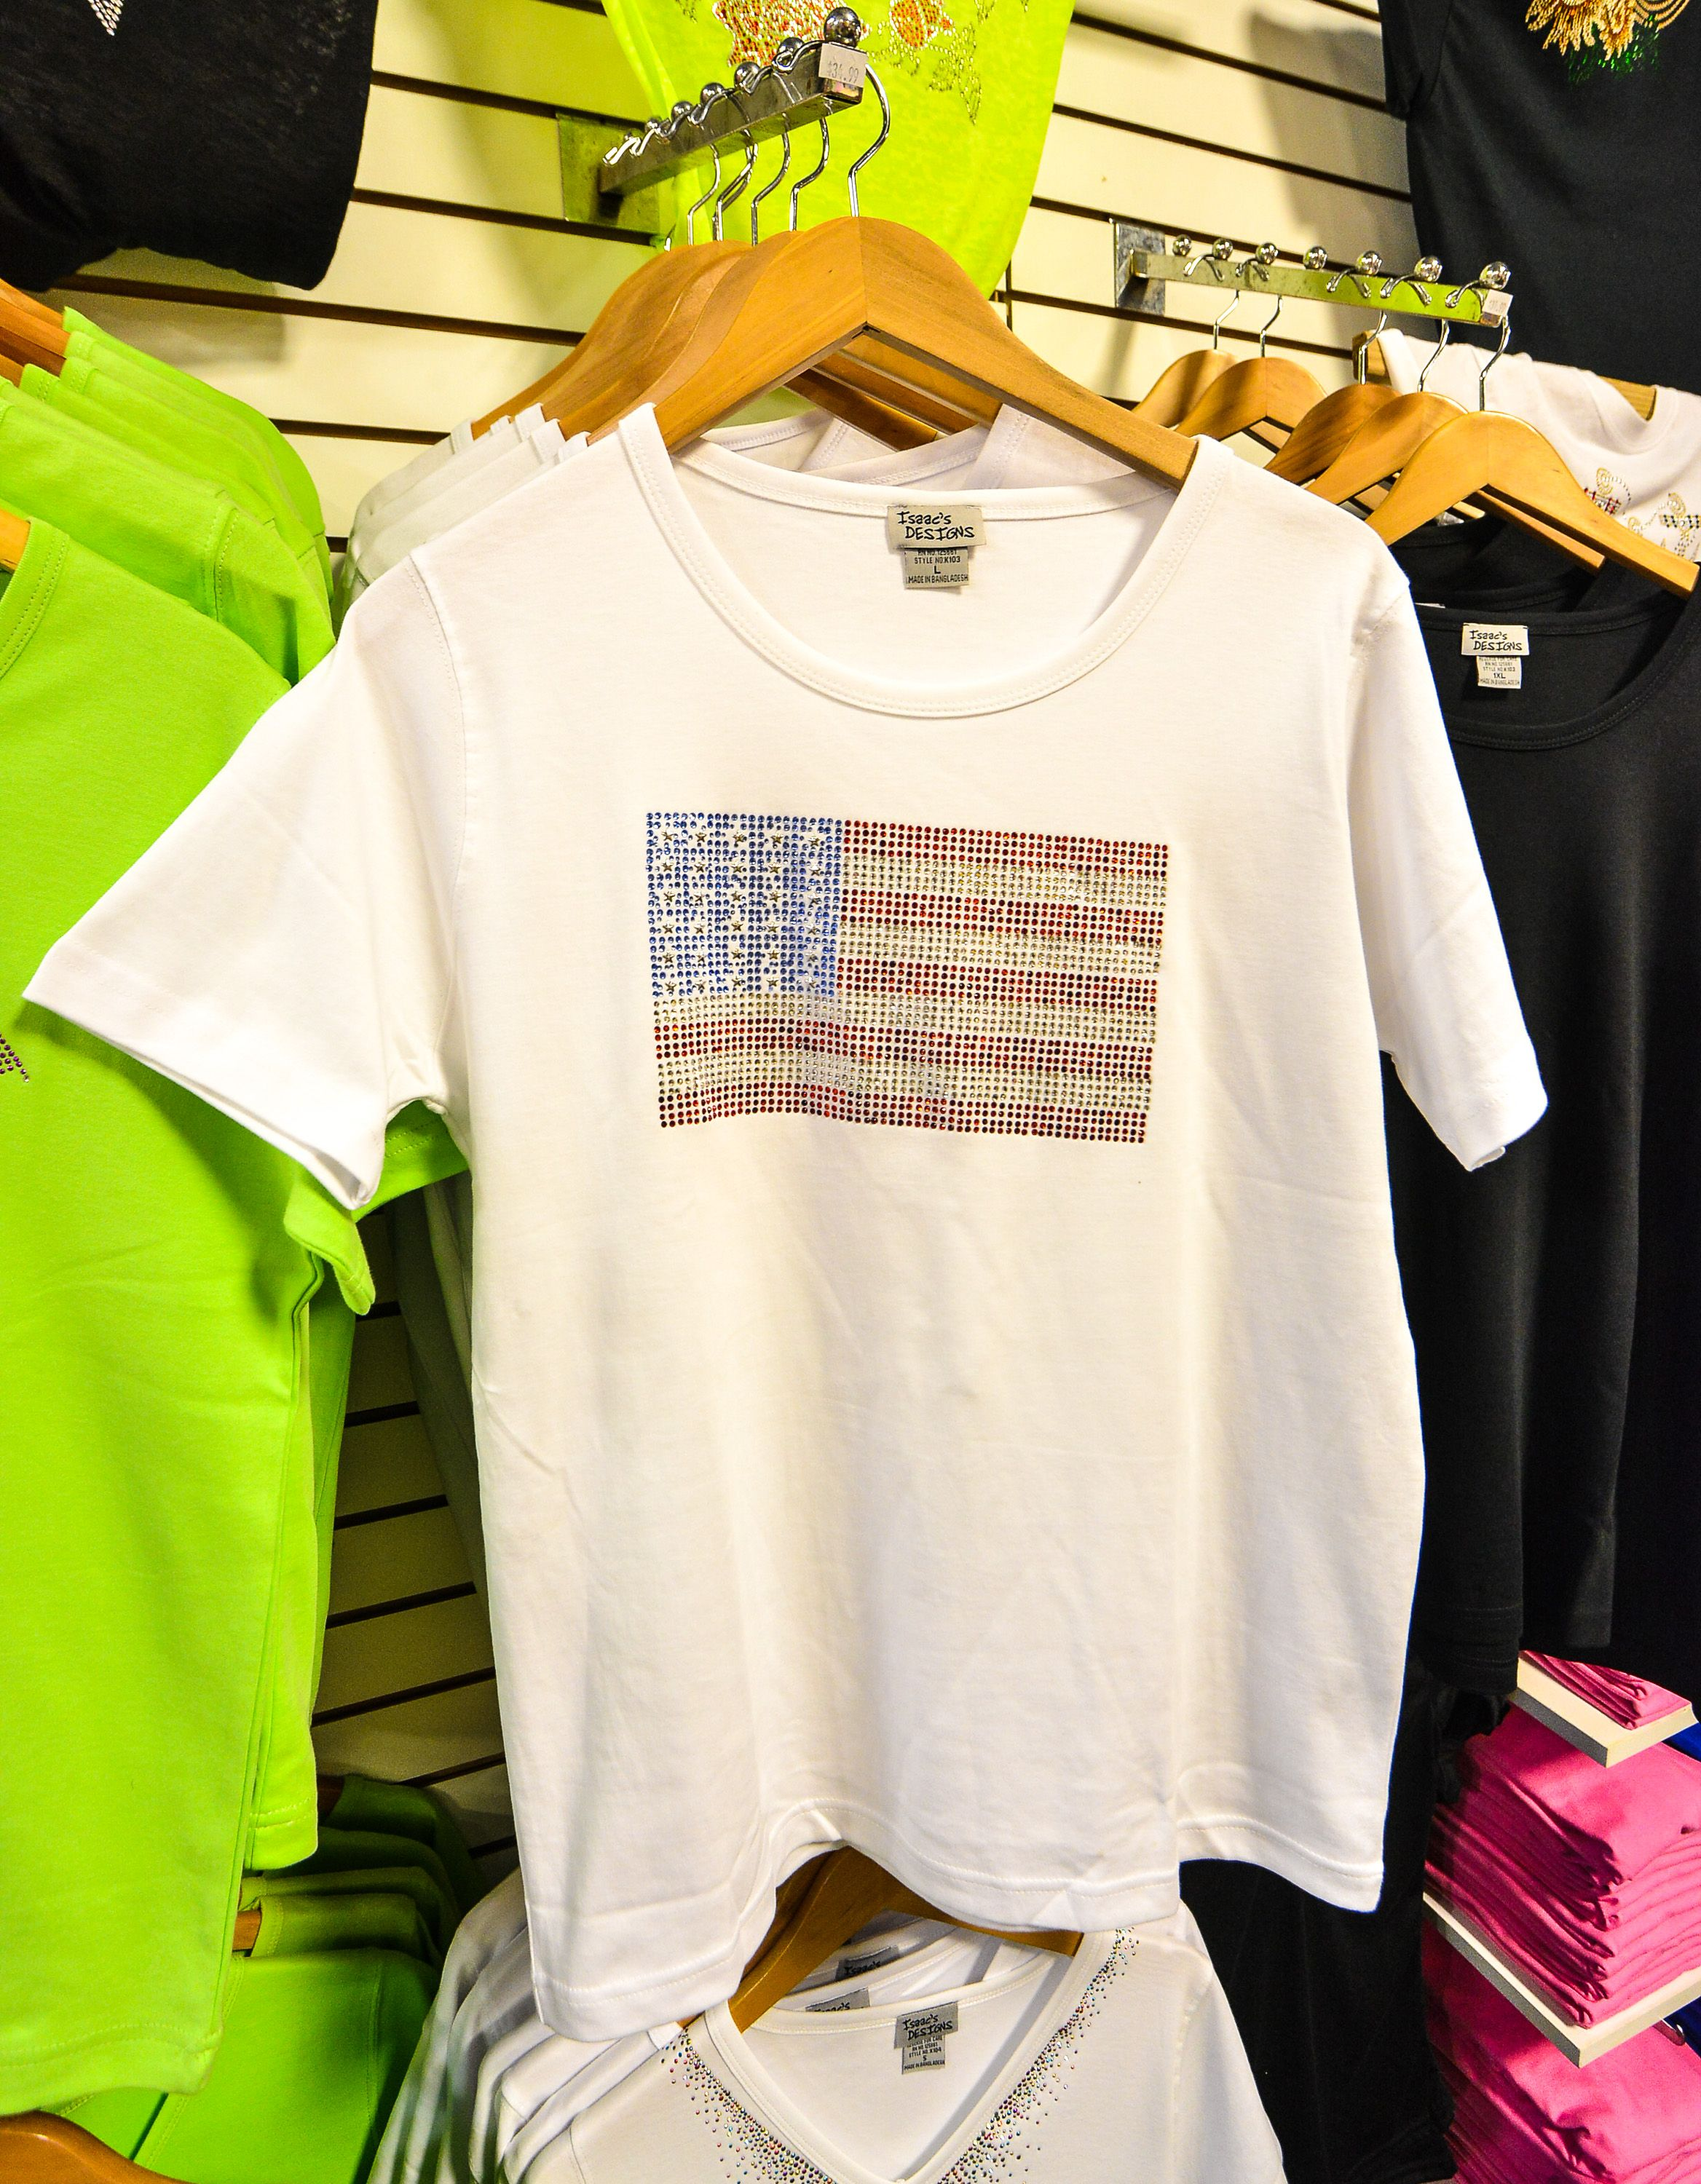 Just in time for the July 4th holiday..Bling flag shirt from Leanny's Boutique.